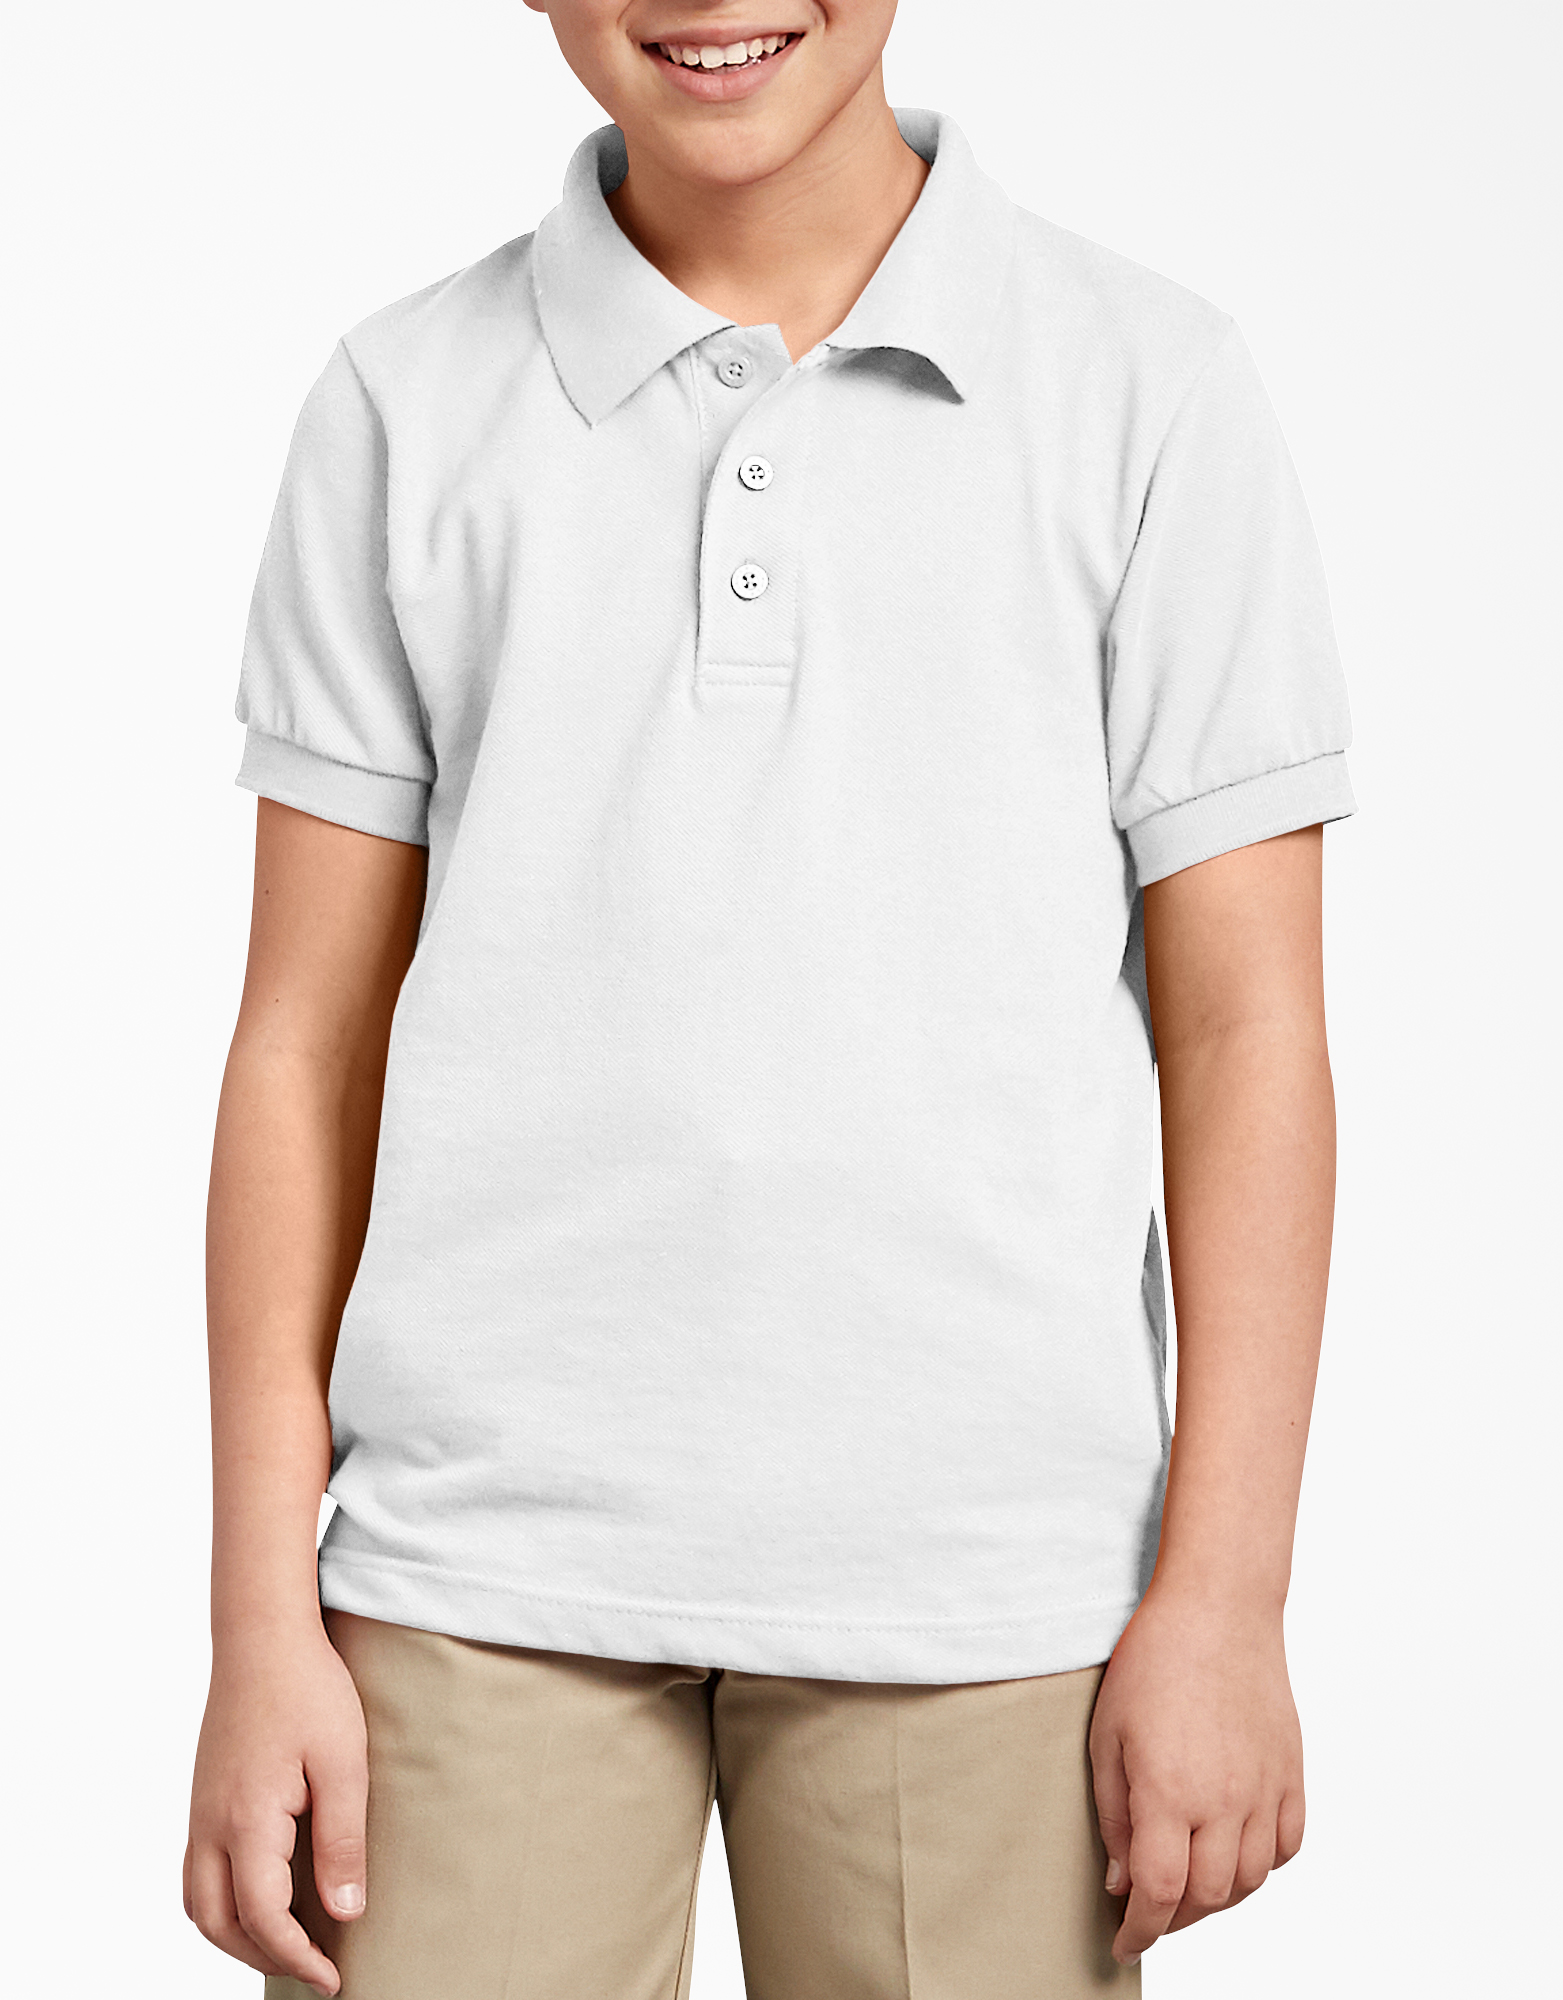 Kids' Short Sleeve Pique Polo Shirt, 4-20 - White (WH)